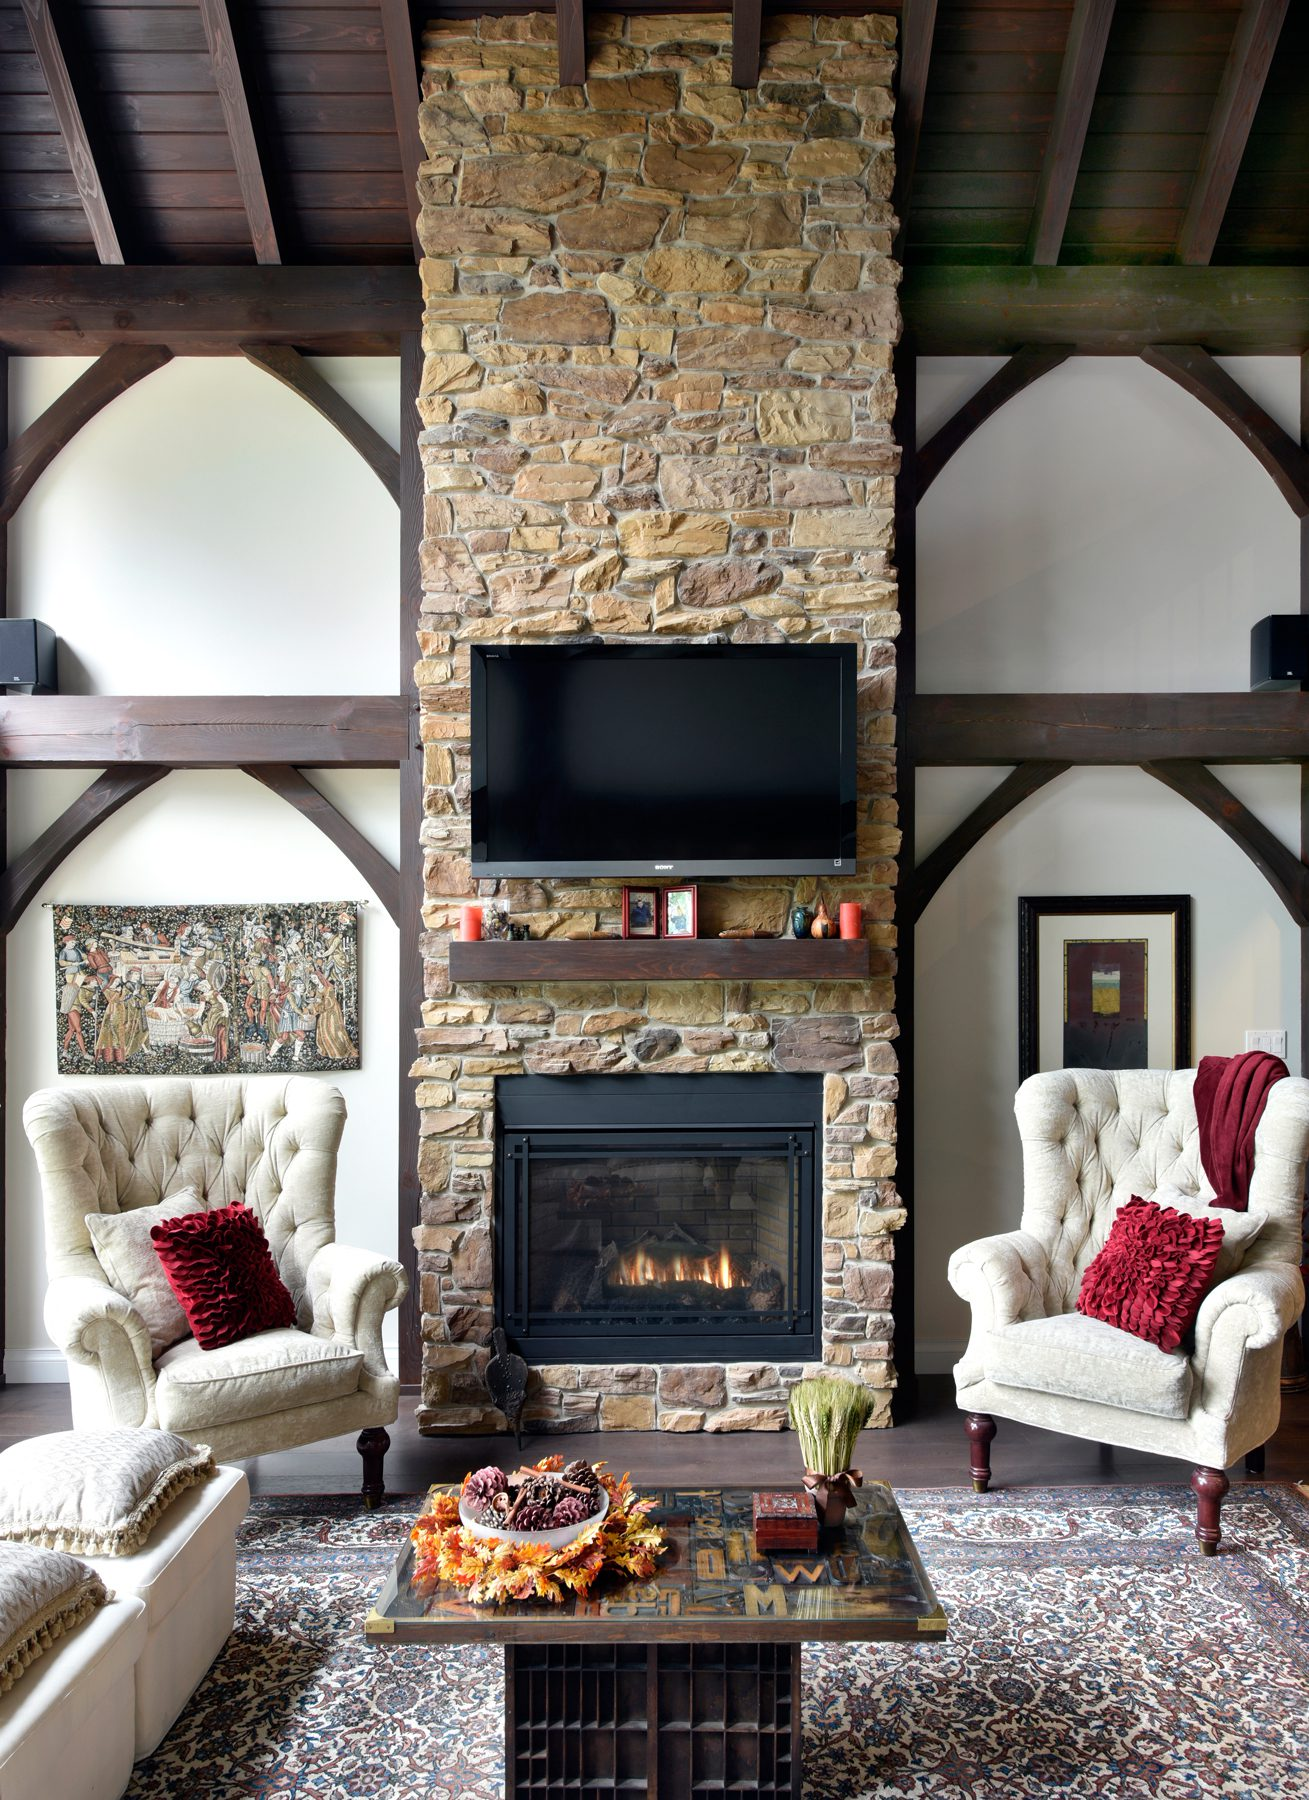 Normerica Timber Frame, Interior, Cottage, Fireplace, Living Room, Great Room, Cathedral Ceiling